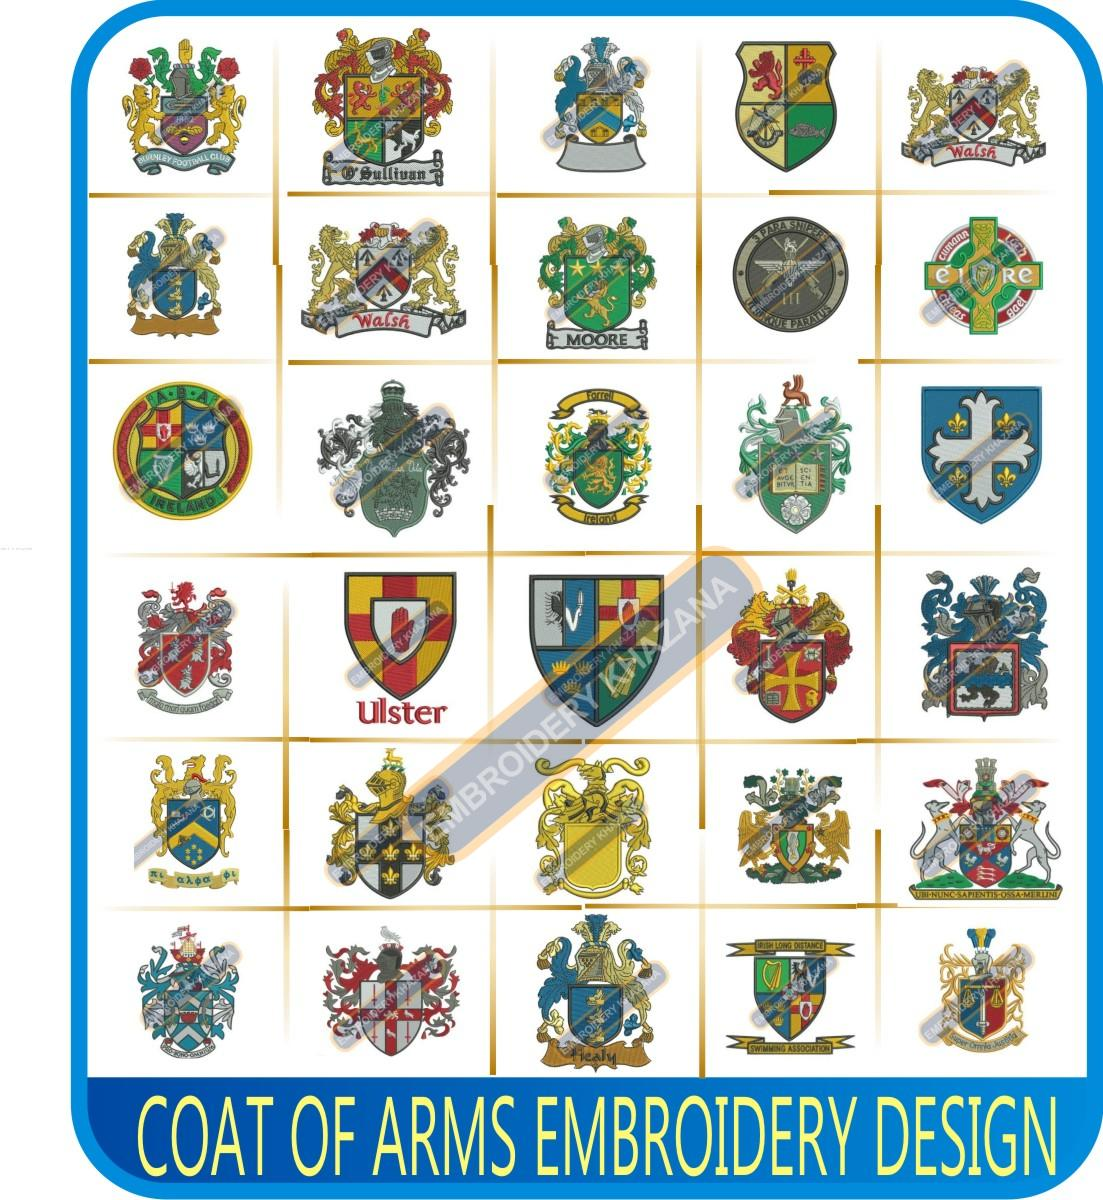 Coat of arms Embroidery Designs